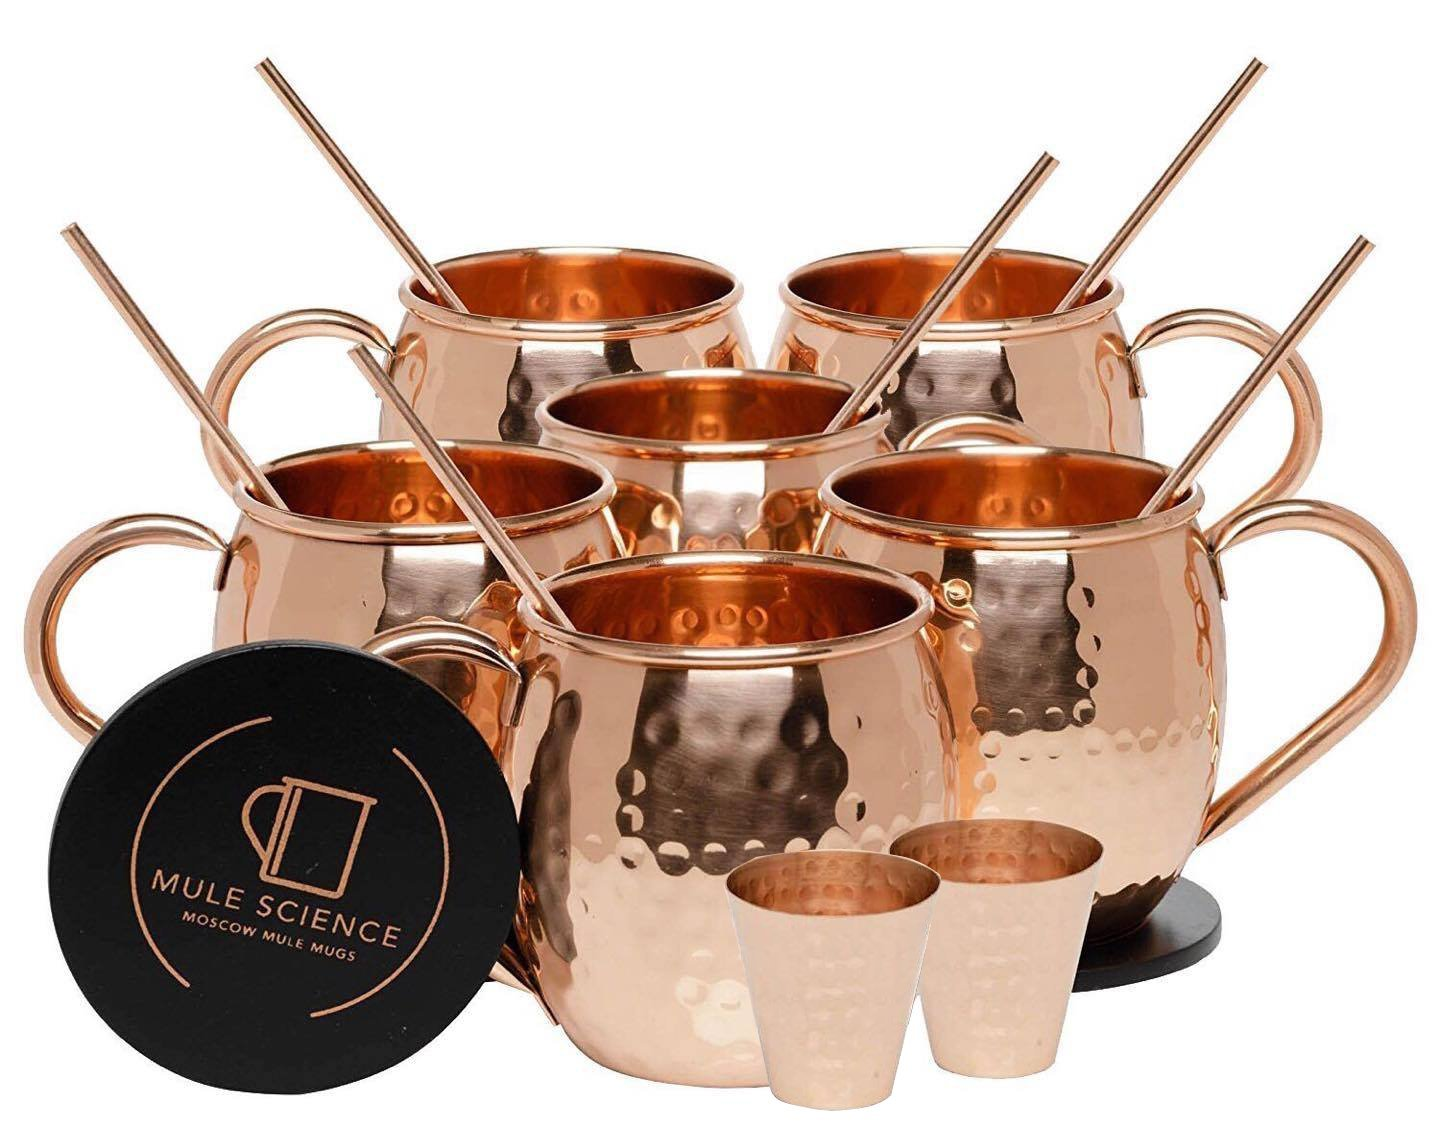 Pure Copper Moscow Mule Mugs (Set of 6) by Mule Science with BONUS: Highest Quality Cocktail Copper 6 Straws, 2 Shot glasses and 6 coasters!